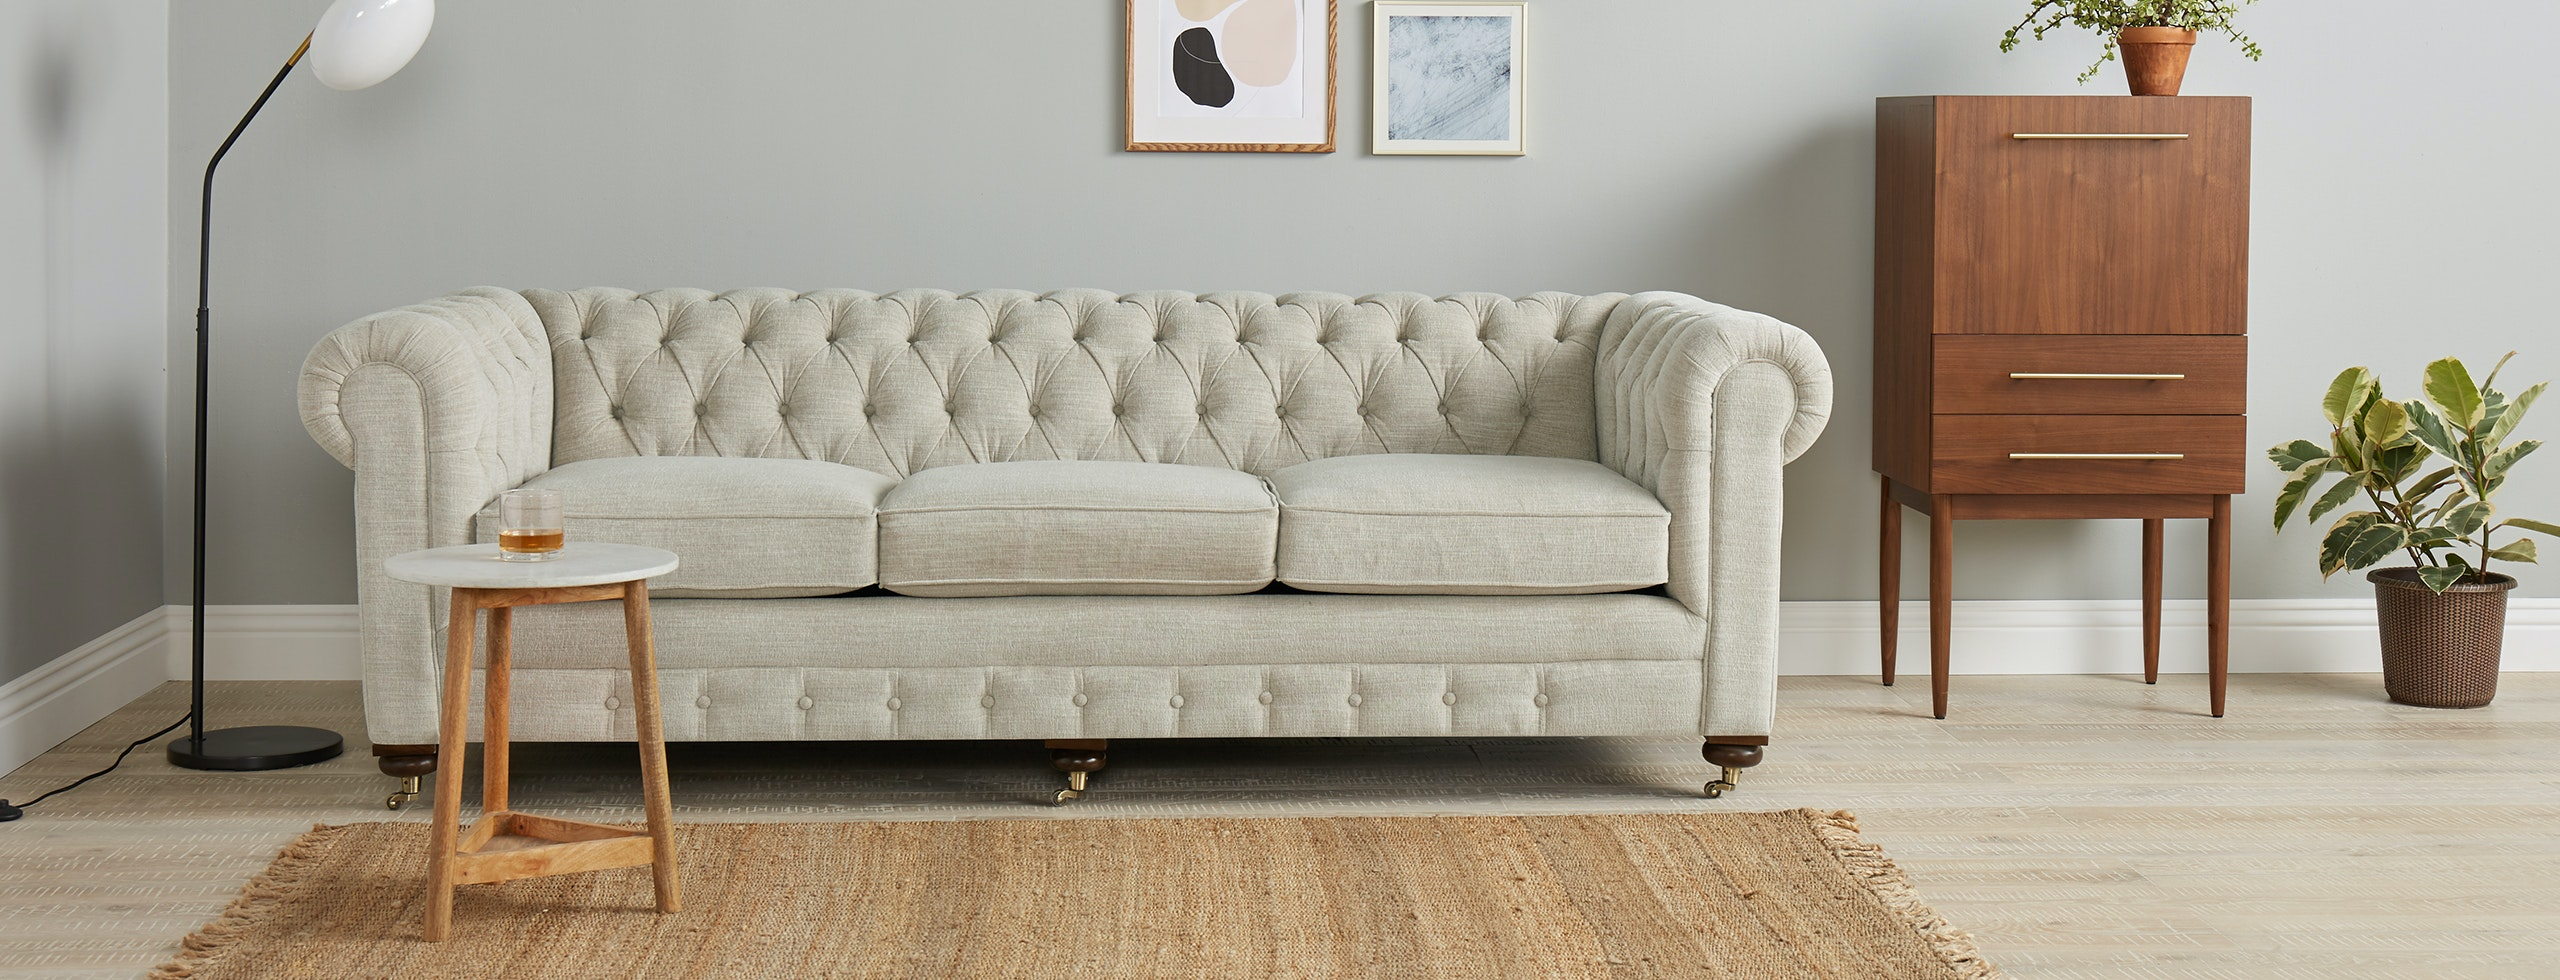 Tremendous Liam Sofa Creativecarmelina Interior Chair Design Creativecarmelinacom